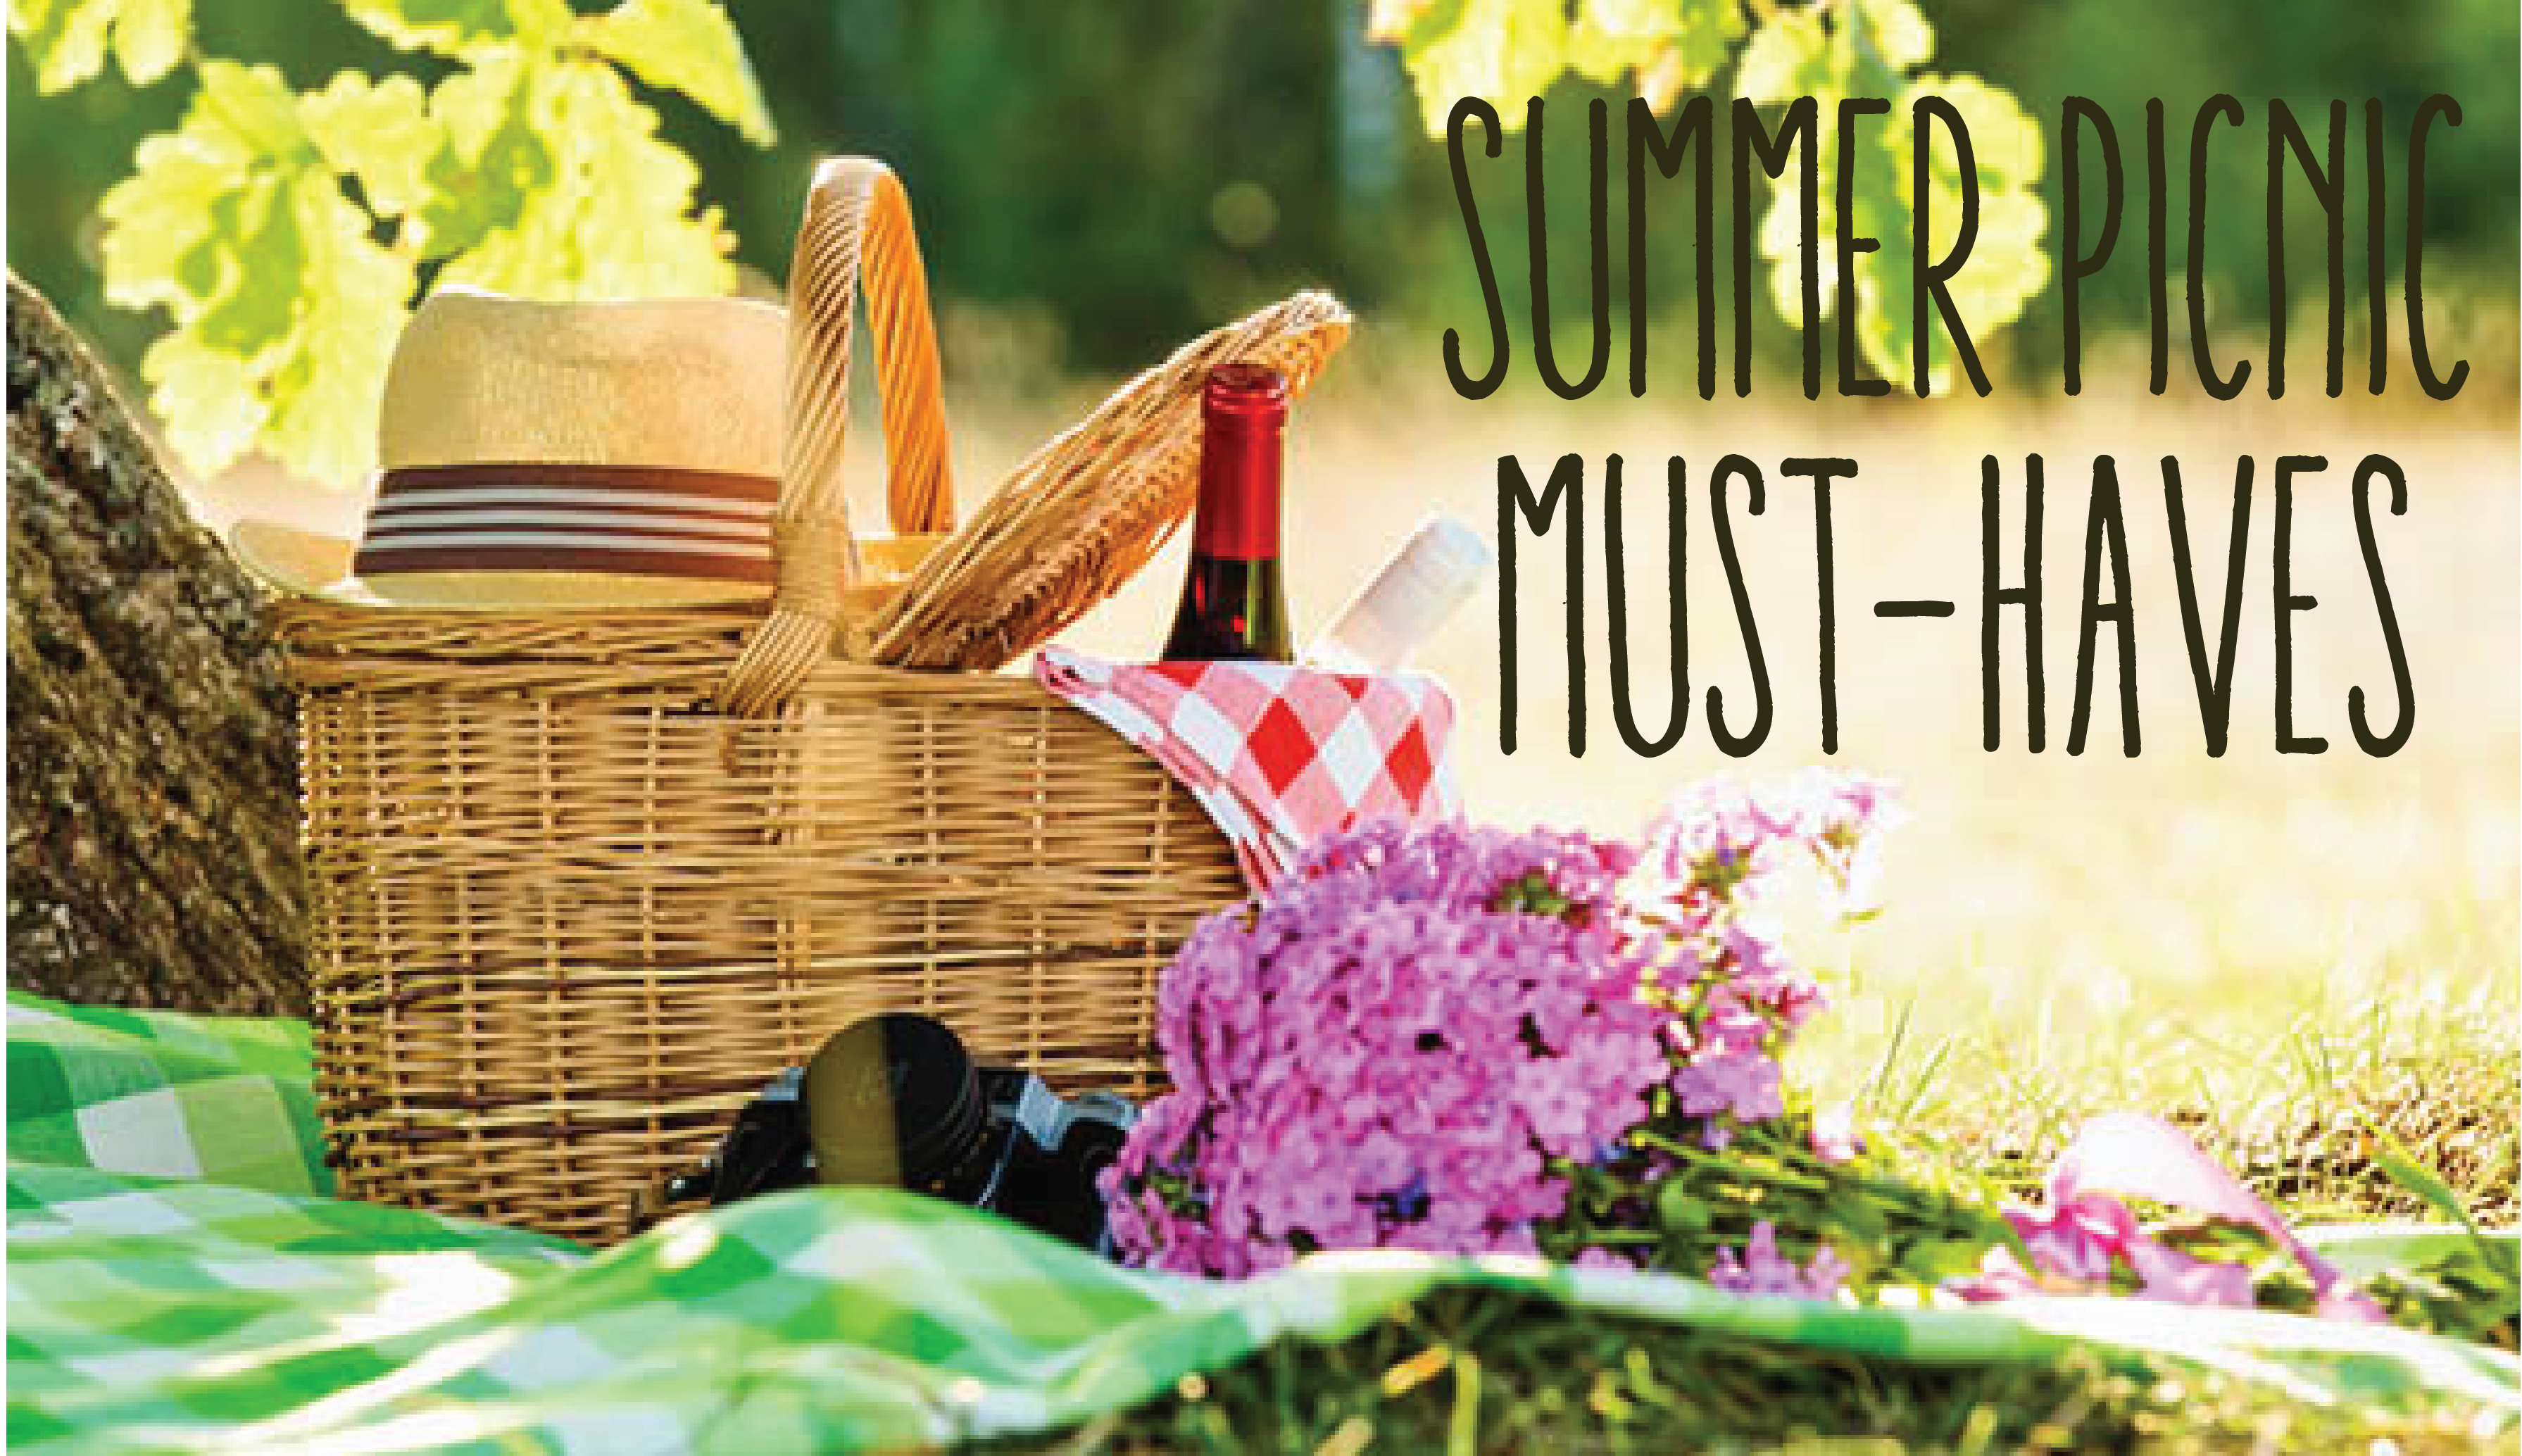 Summer Picnic must haves 10 Creative Nature Superfoods